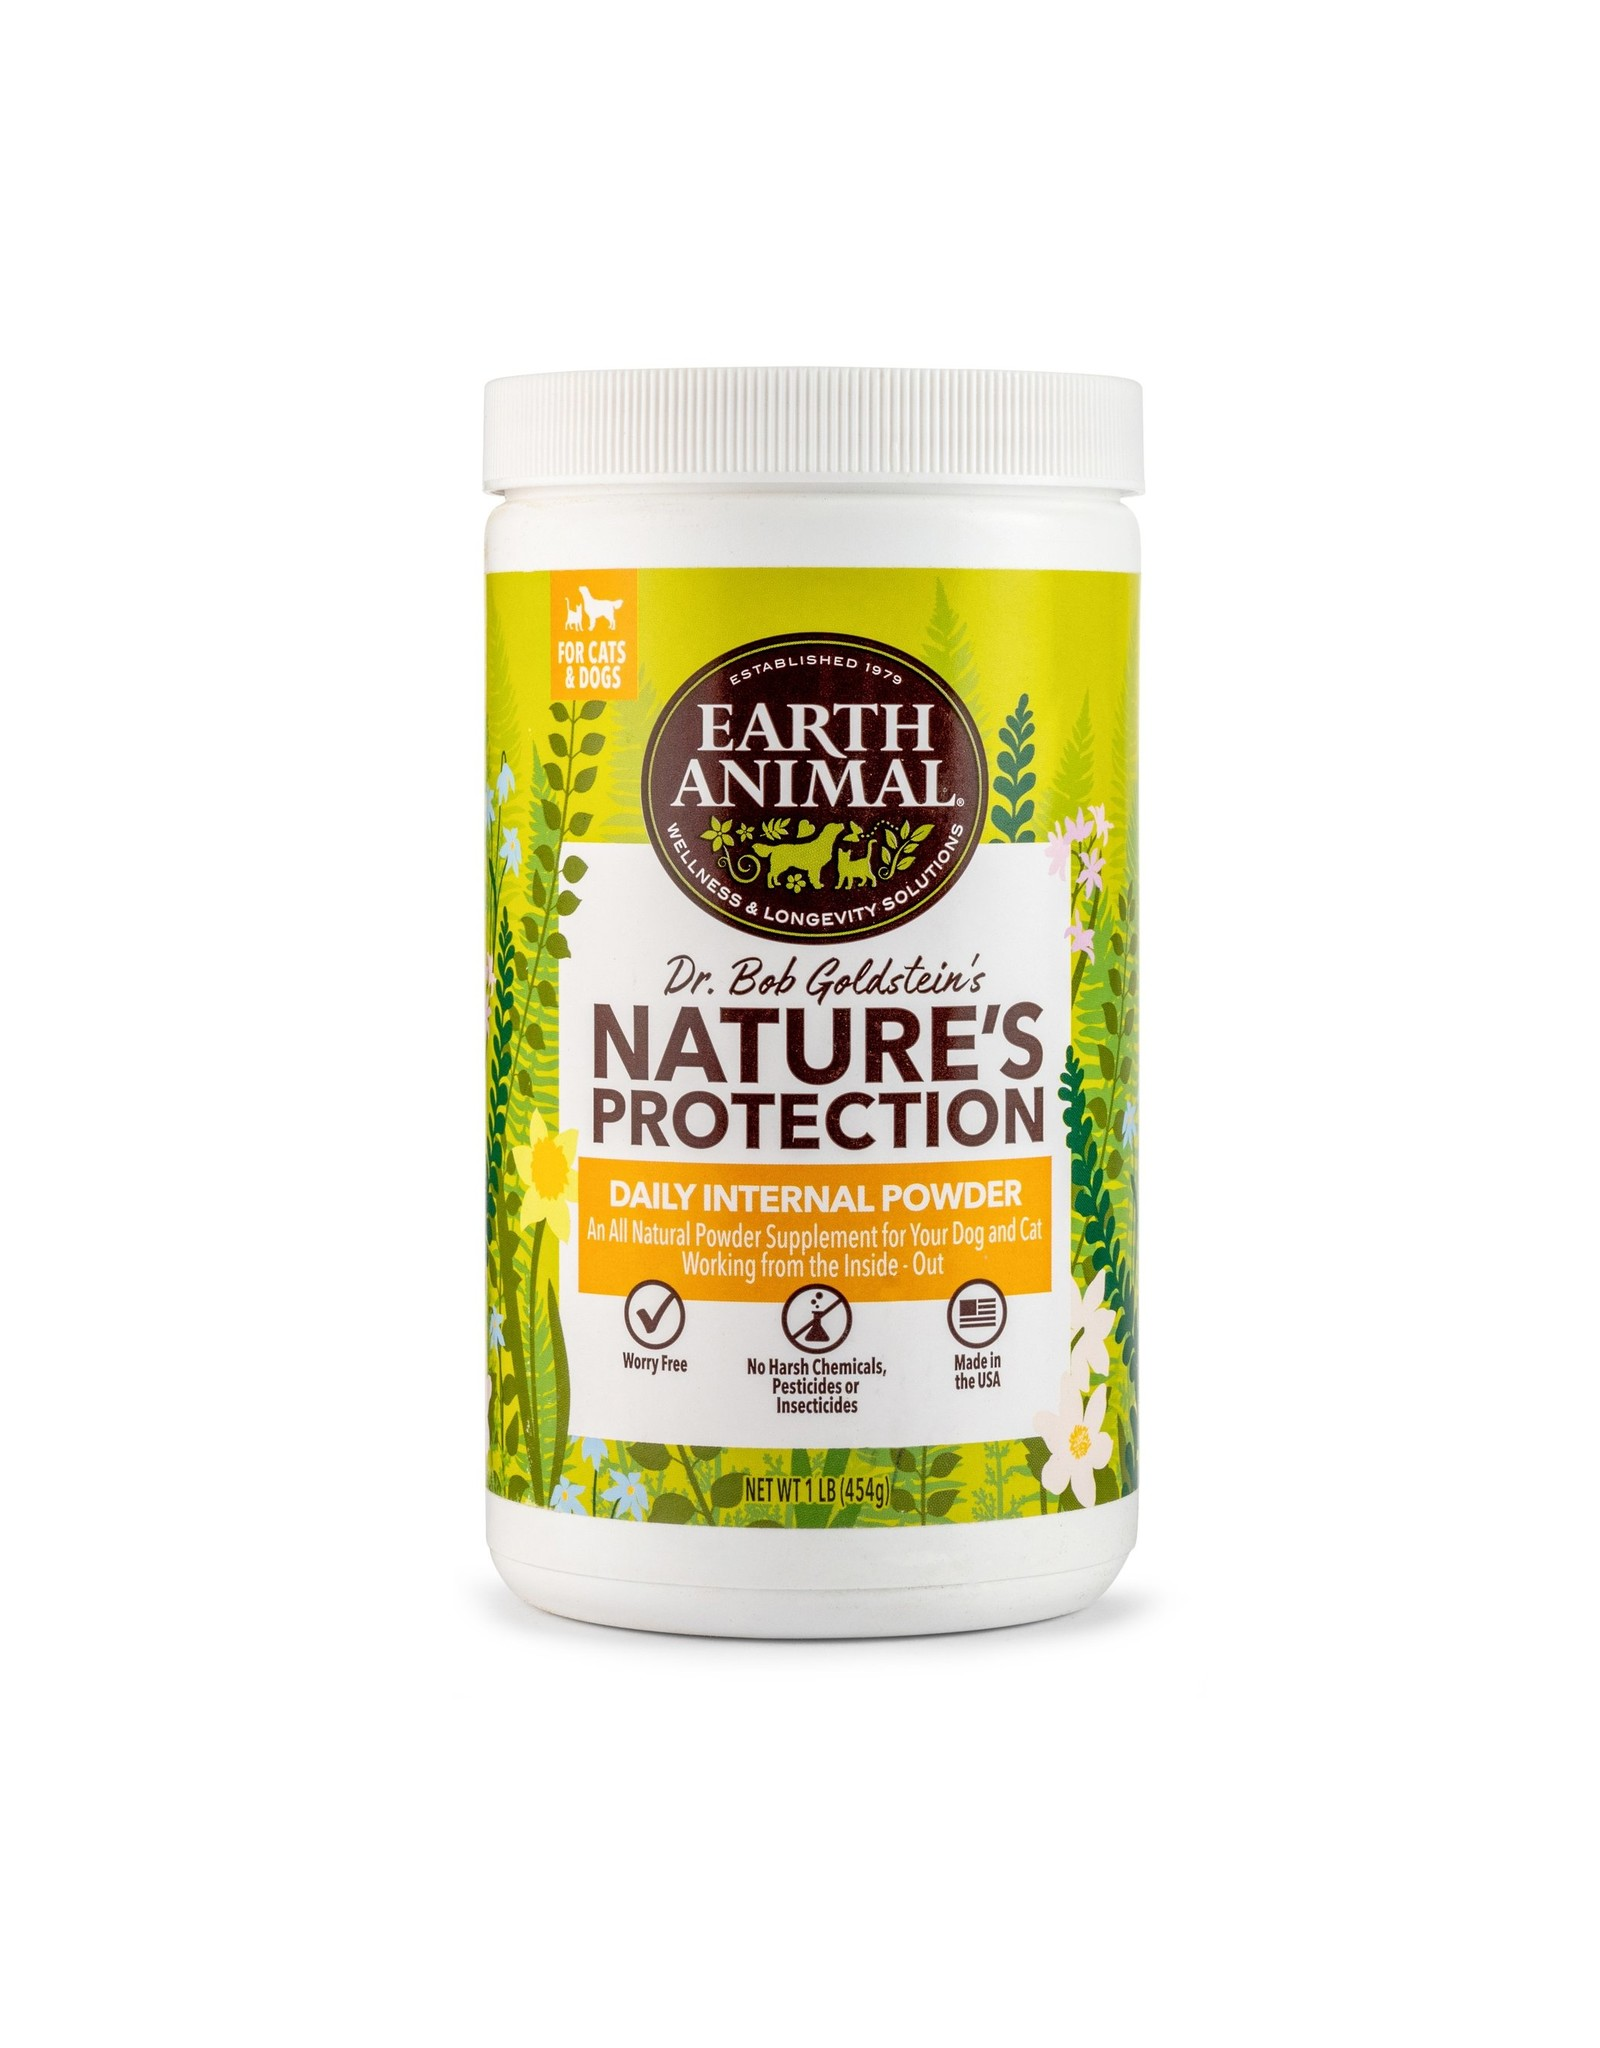 Earth Animal Earth Animal Flea & Tick Internal Powder